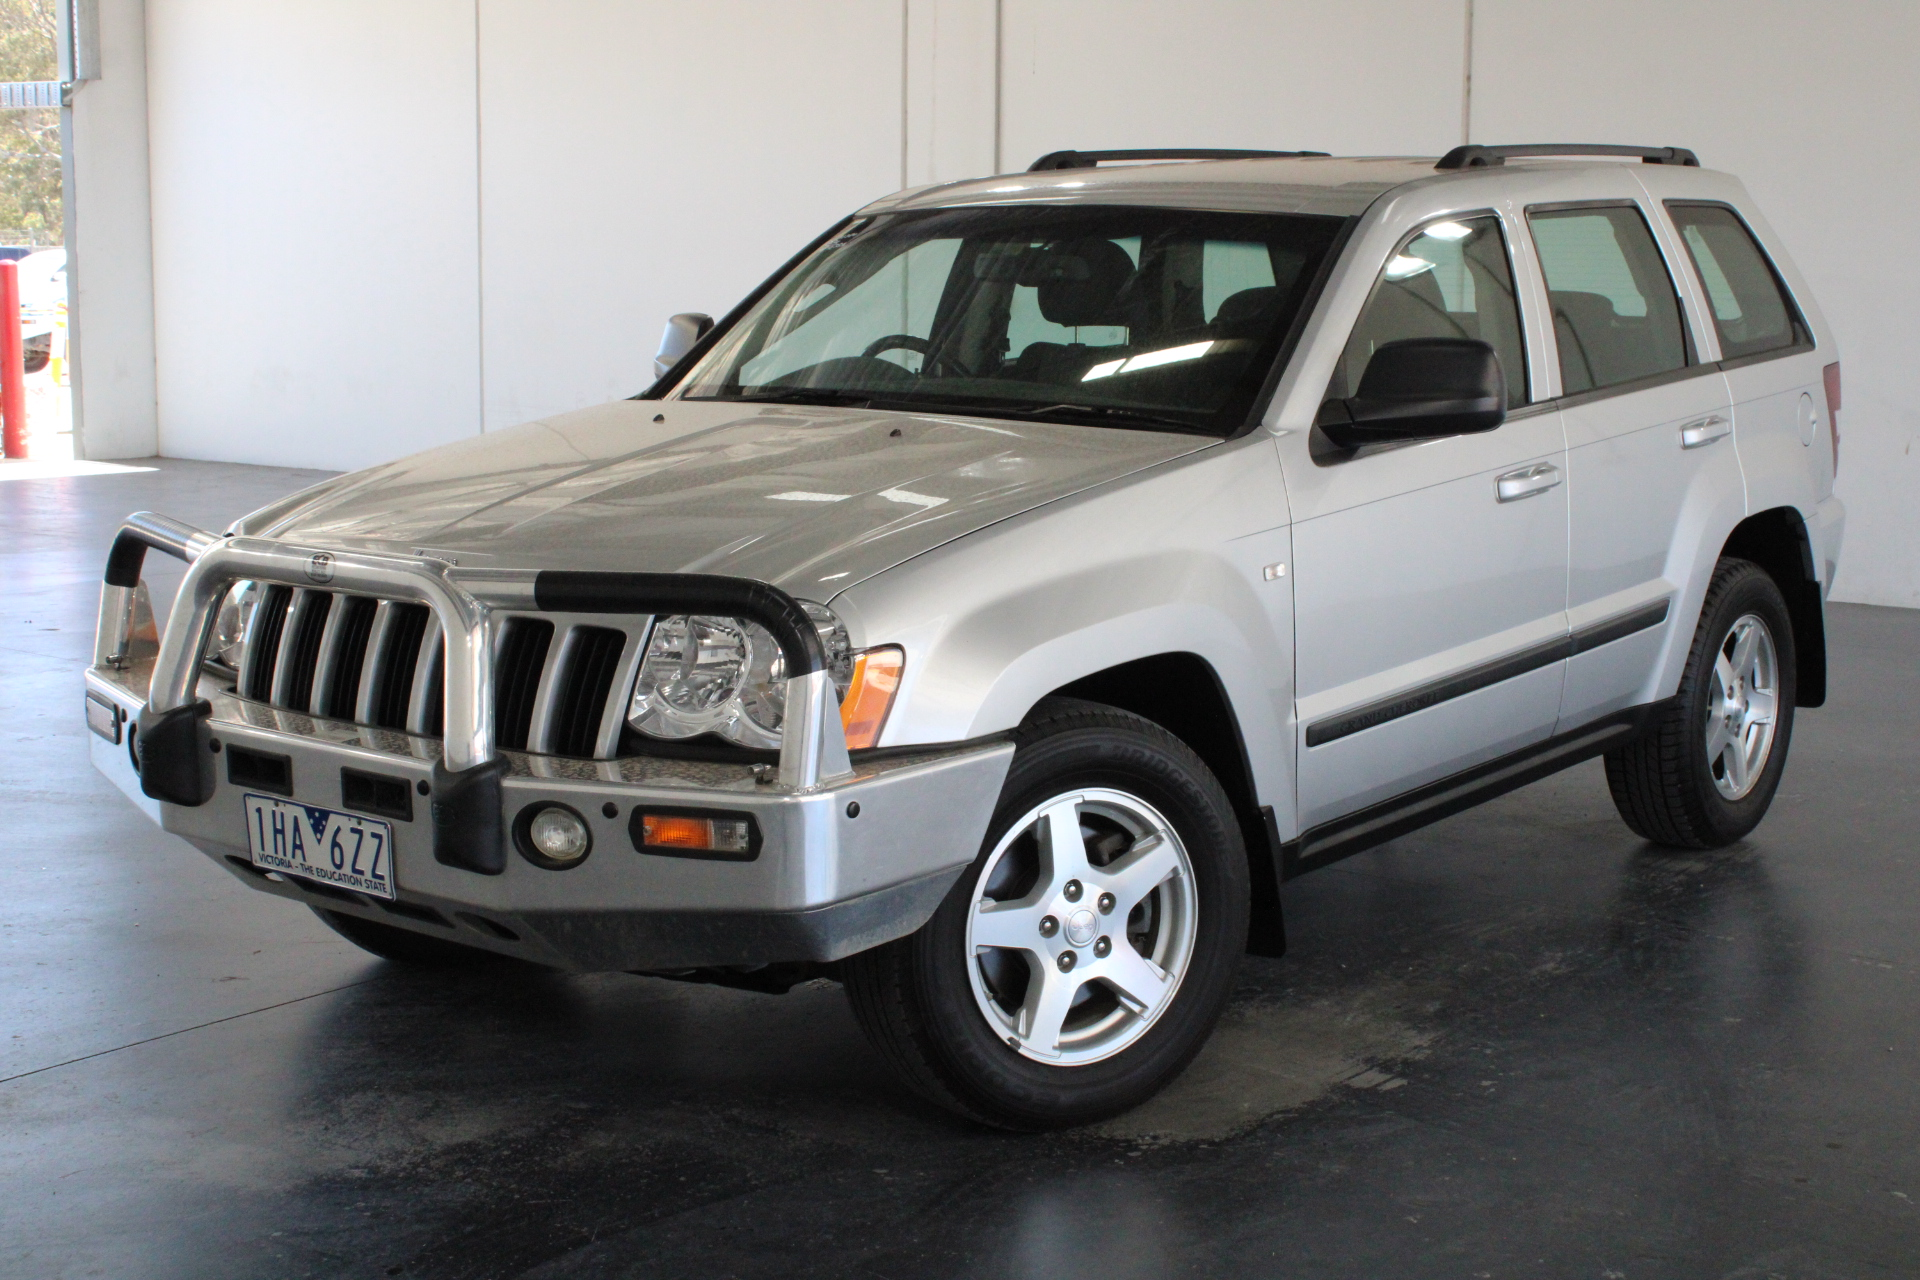 2010 Jeep Grand Cherokee Laredo (4x4) WH Turbo Diesel Automatic Wagon